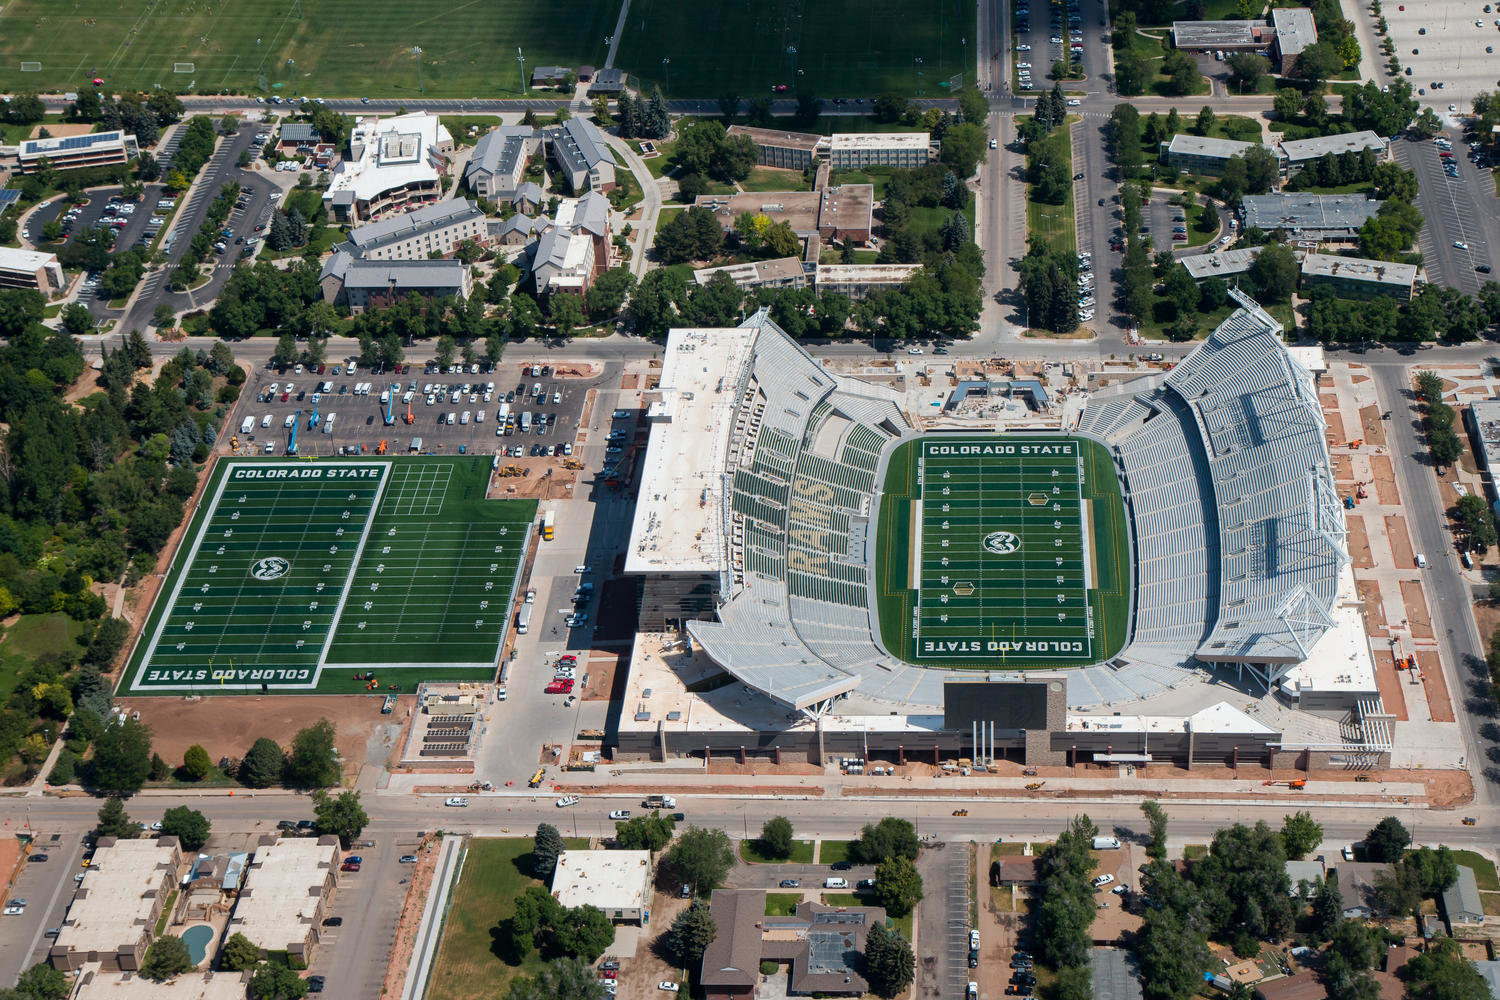 Colorado State Stadium Aerial Photo 10